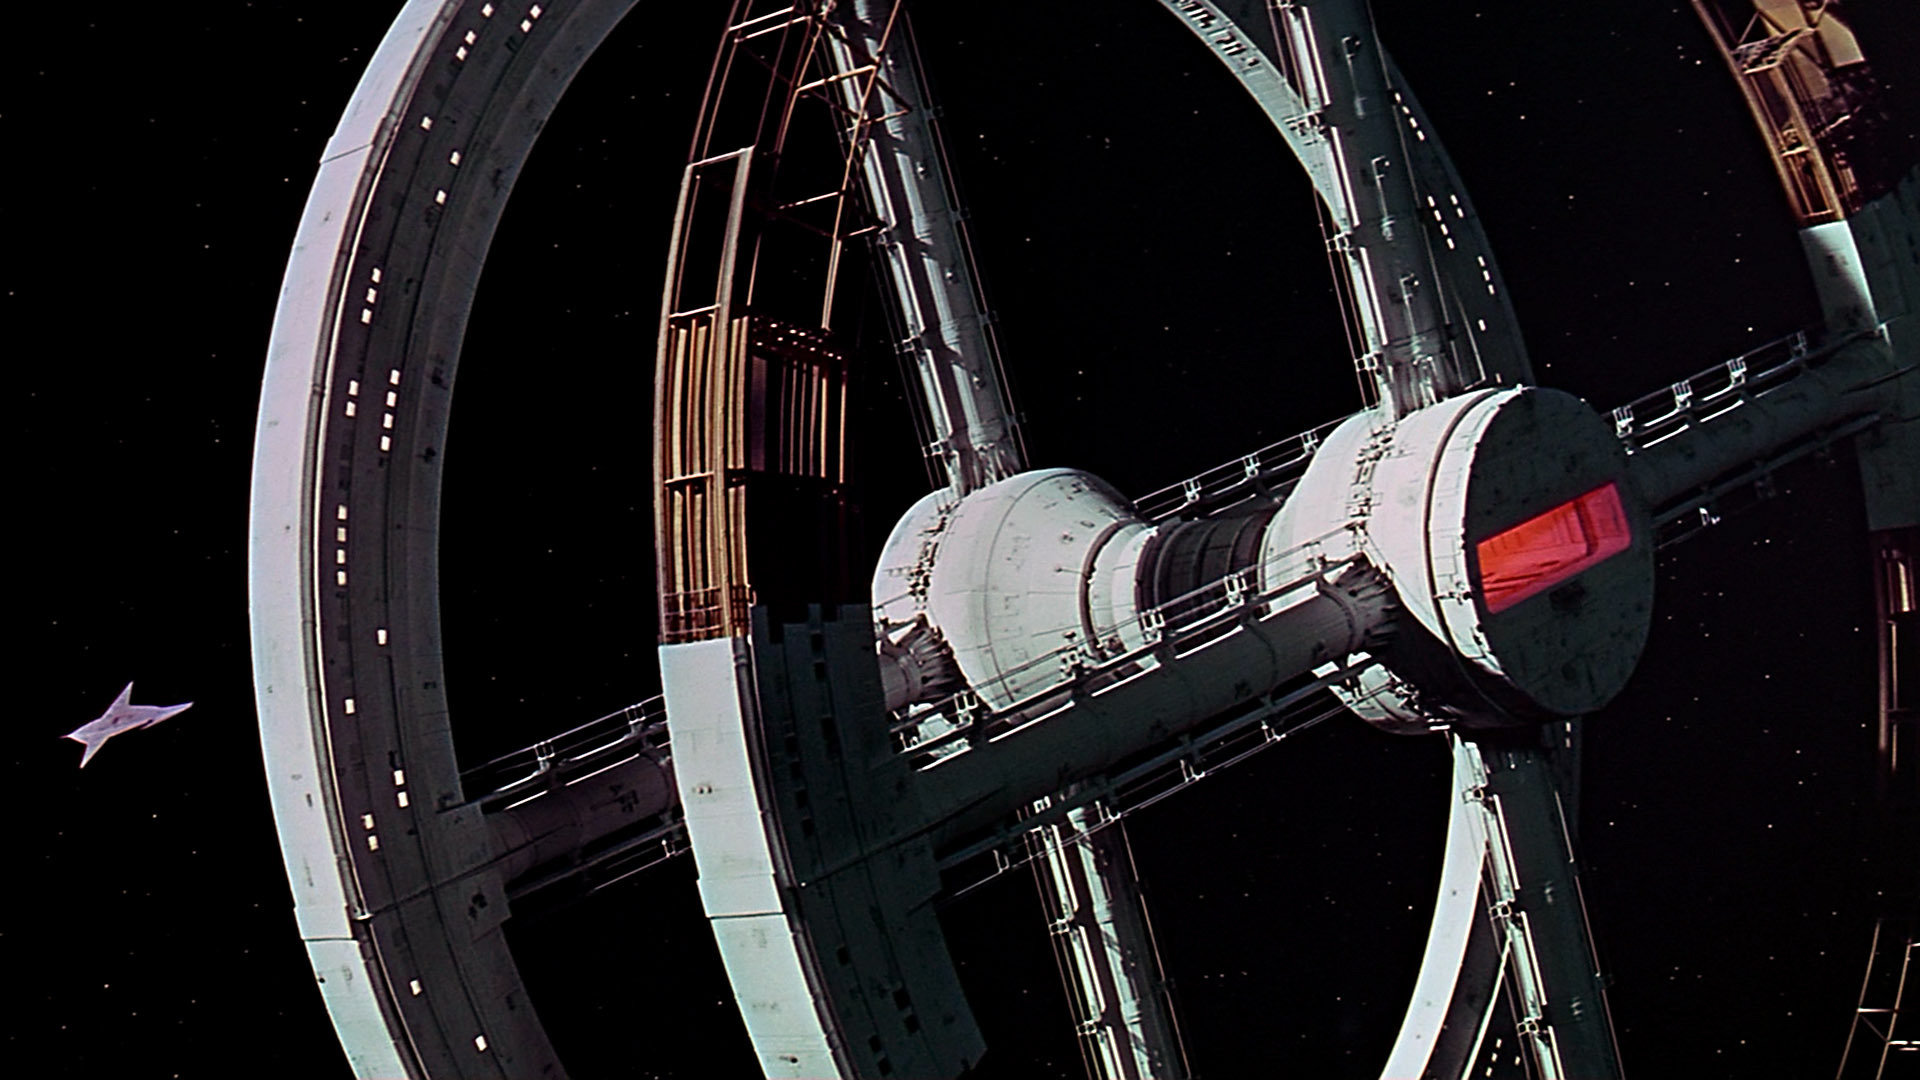 2001 A Space Odyssey Wallpapers 1920x1080 Full Hd 1080p Desktop